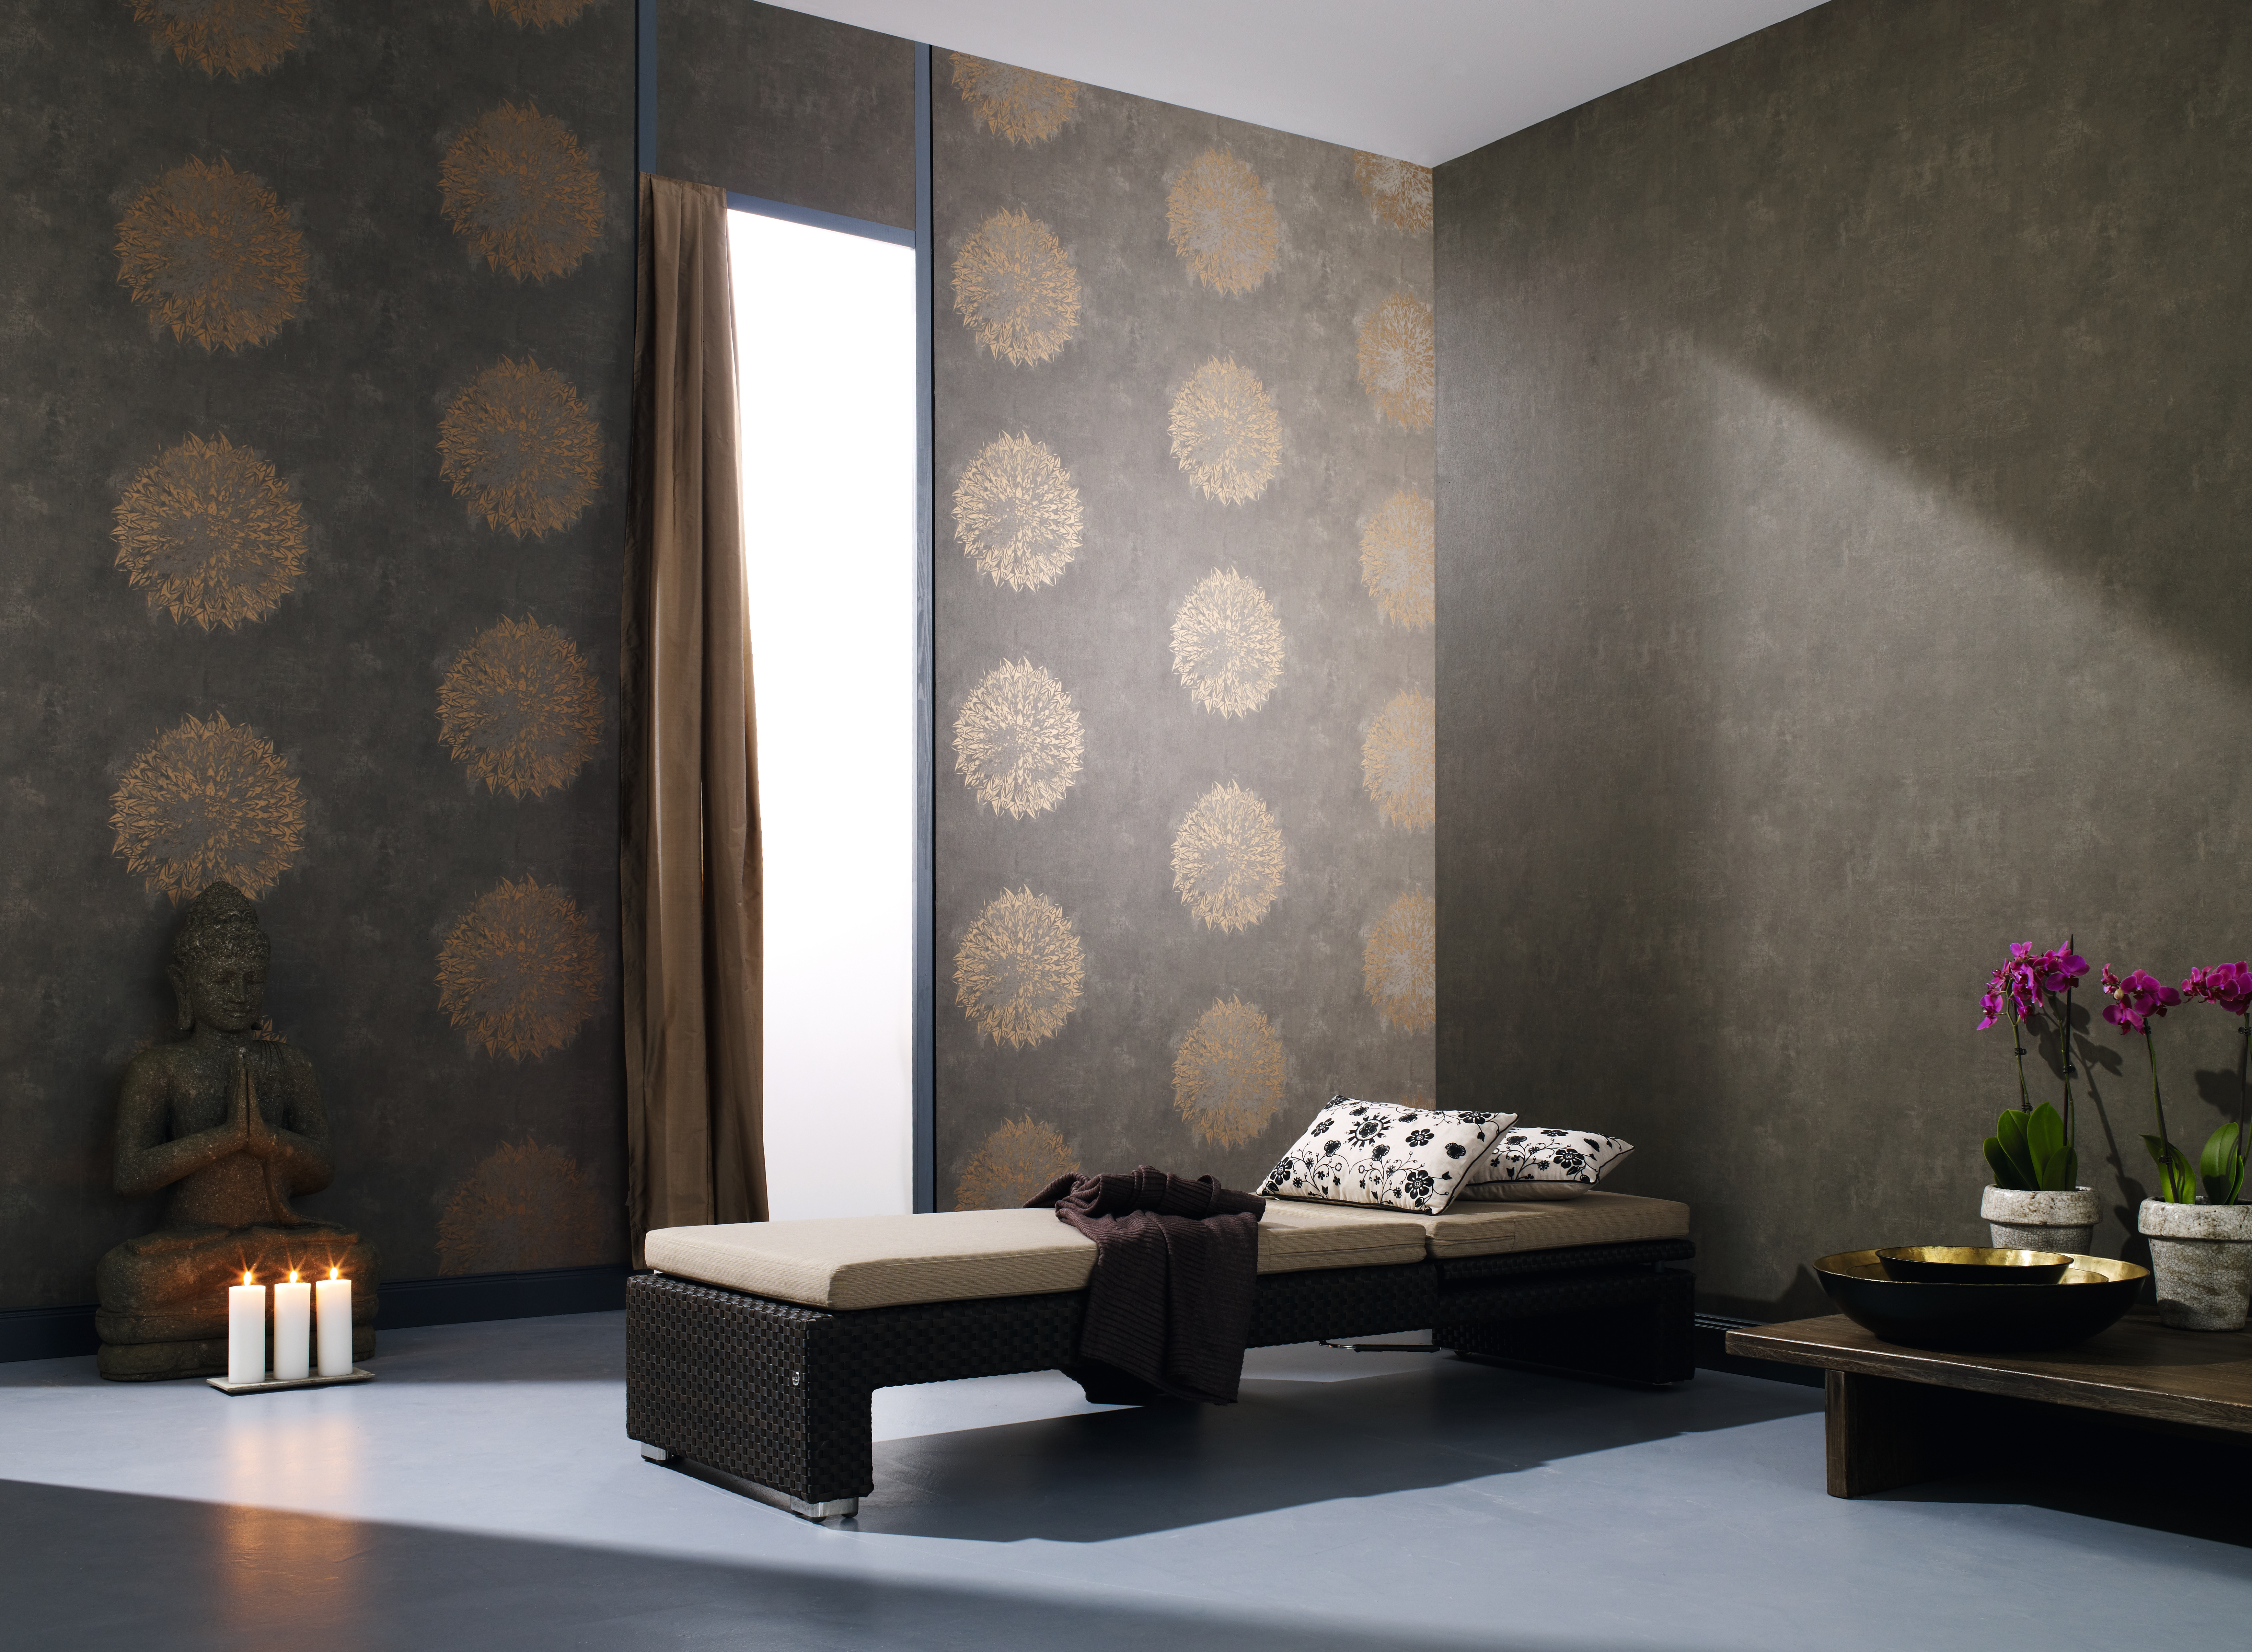 juni 2013 farben sind unsere welt. Black Bedroom Furniture Sets. Home Design Ideas